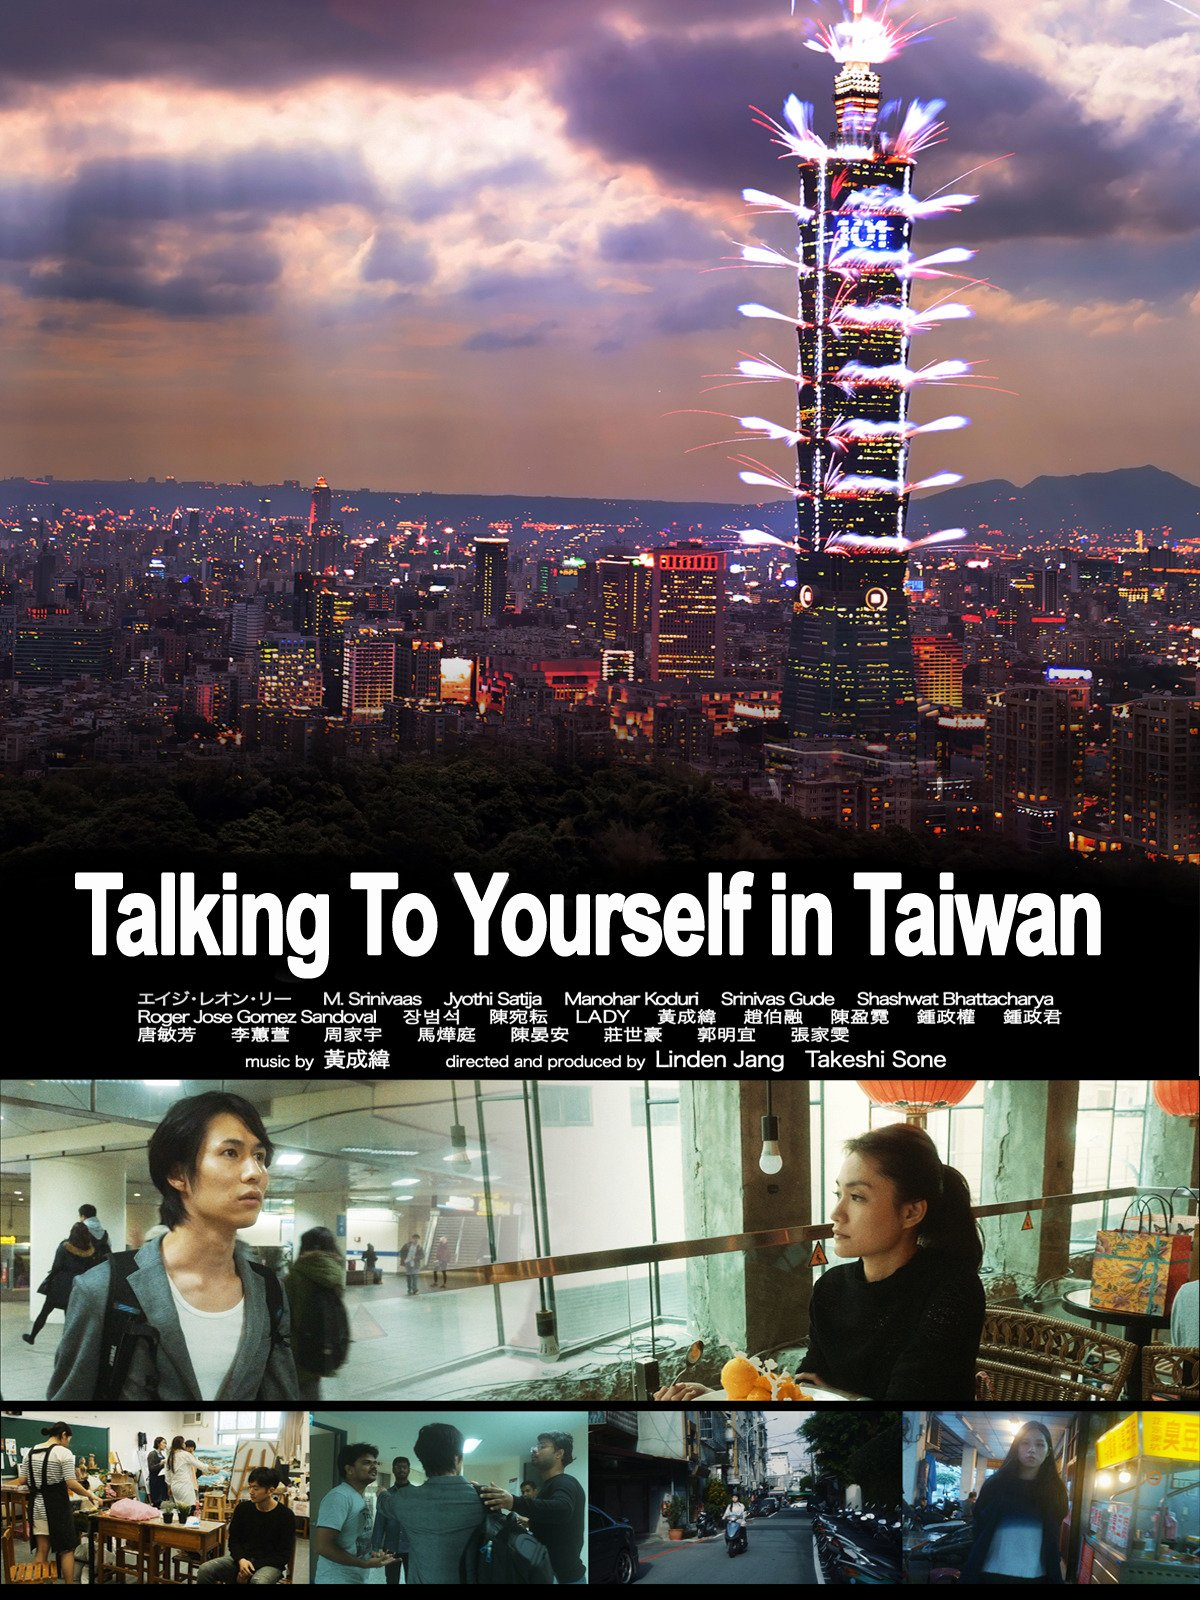 Talking to Yourself in Taiwan